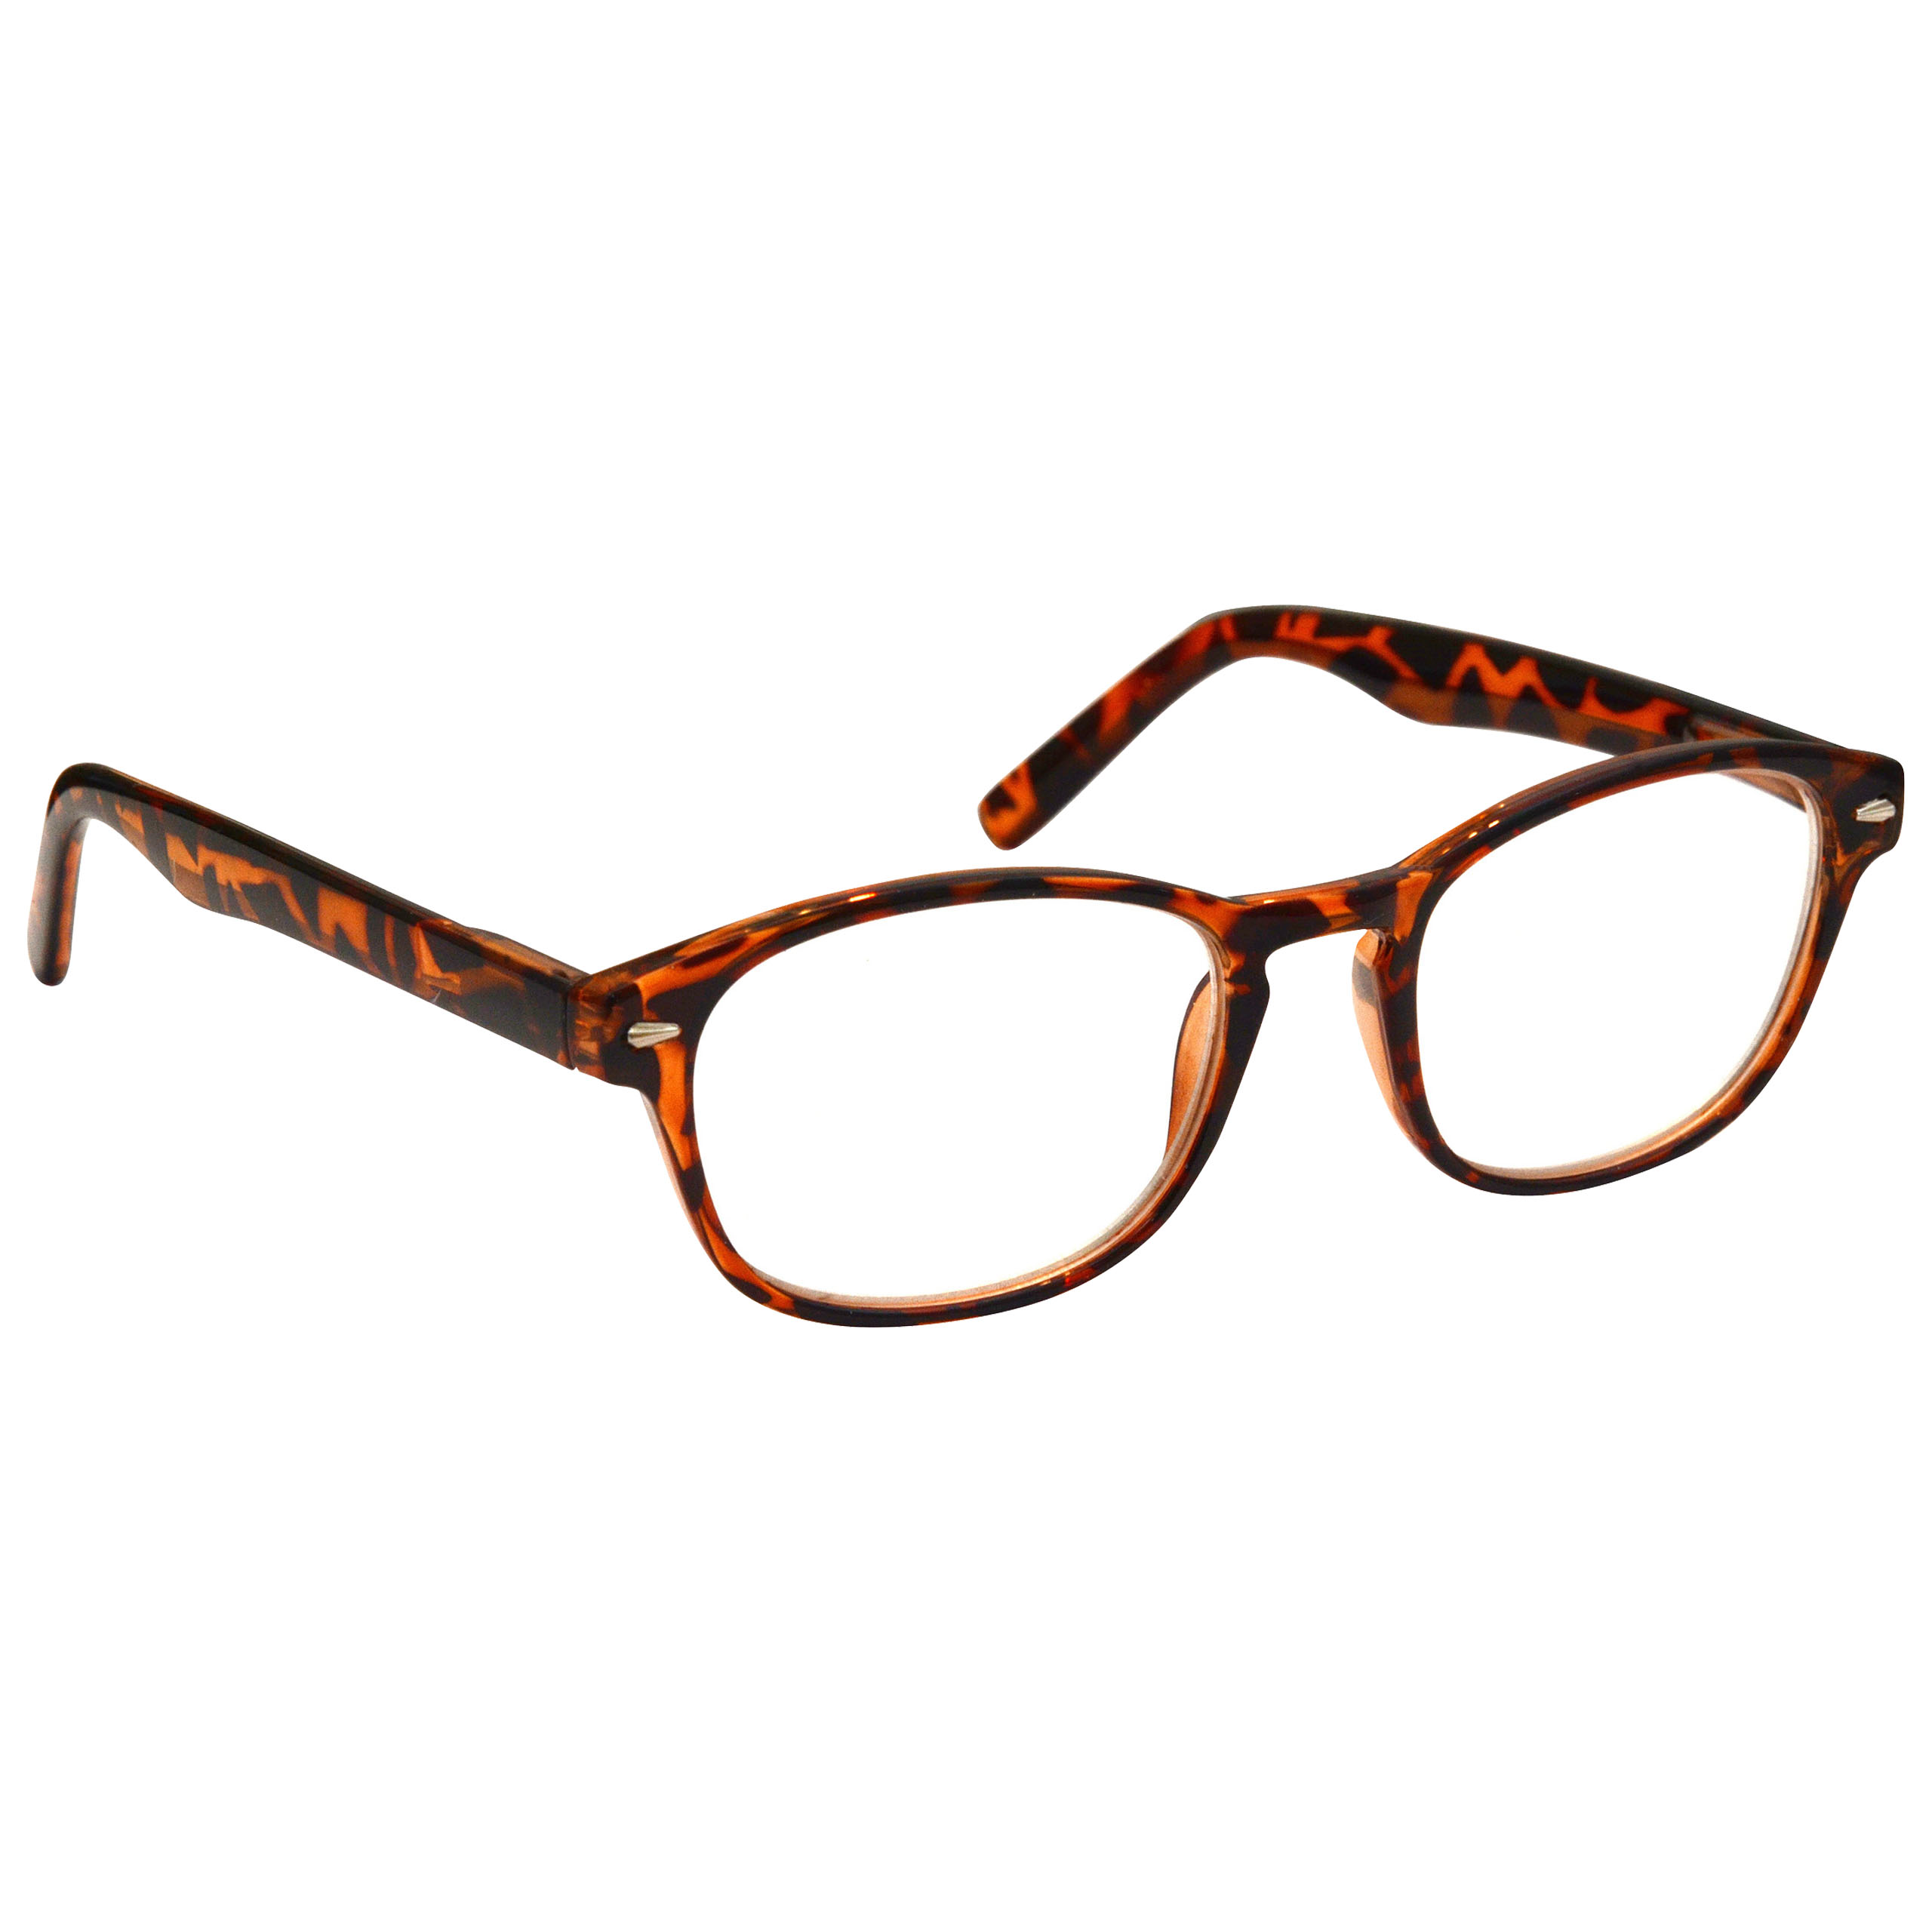 a78c605de302 Mens Reading Glasses Ebay Uk